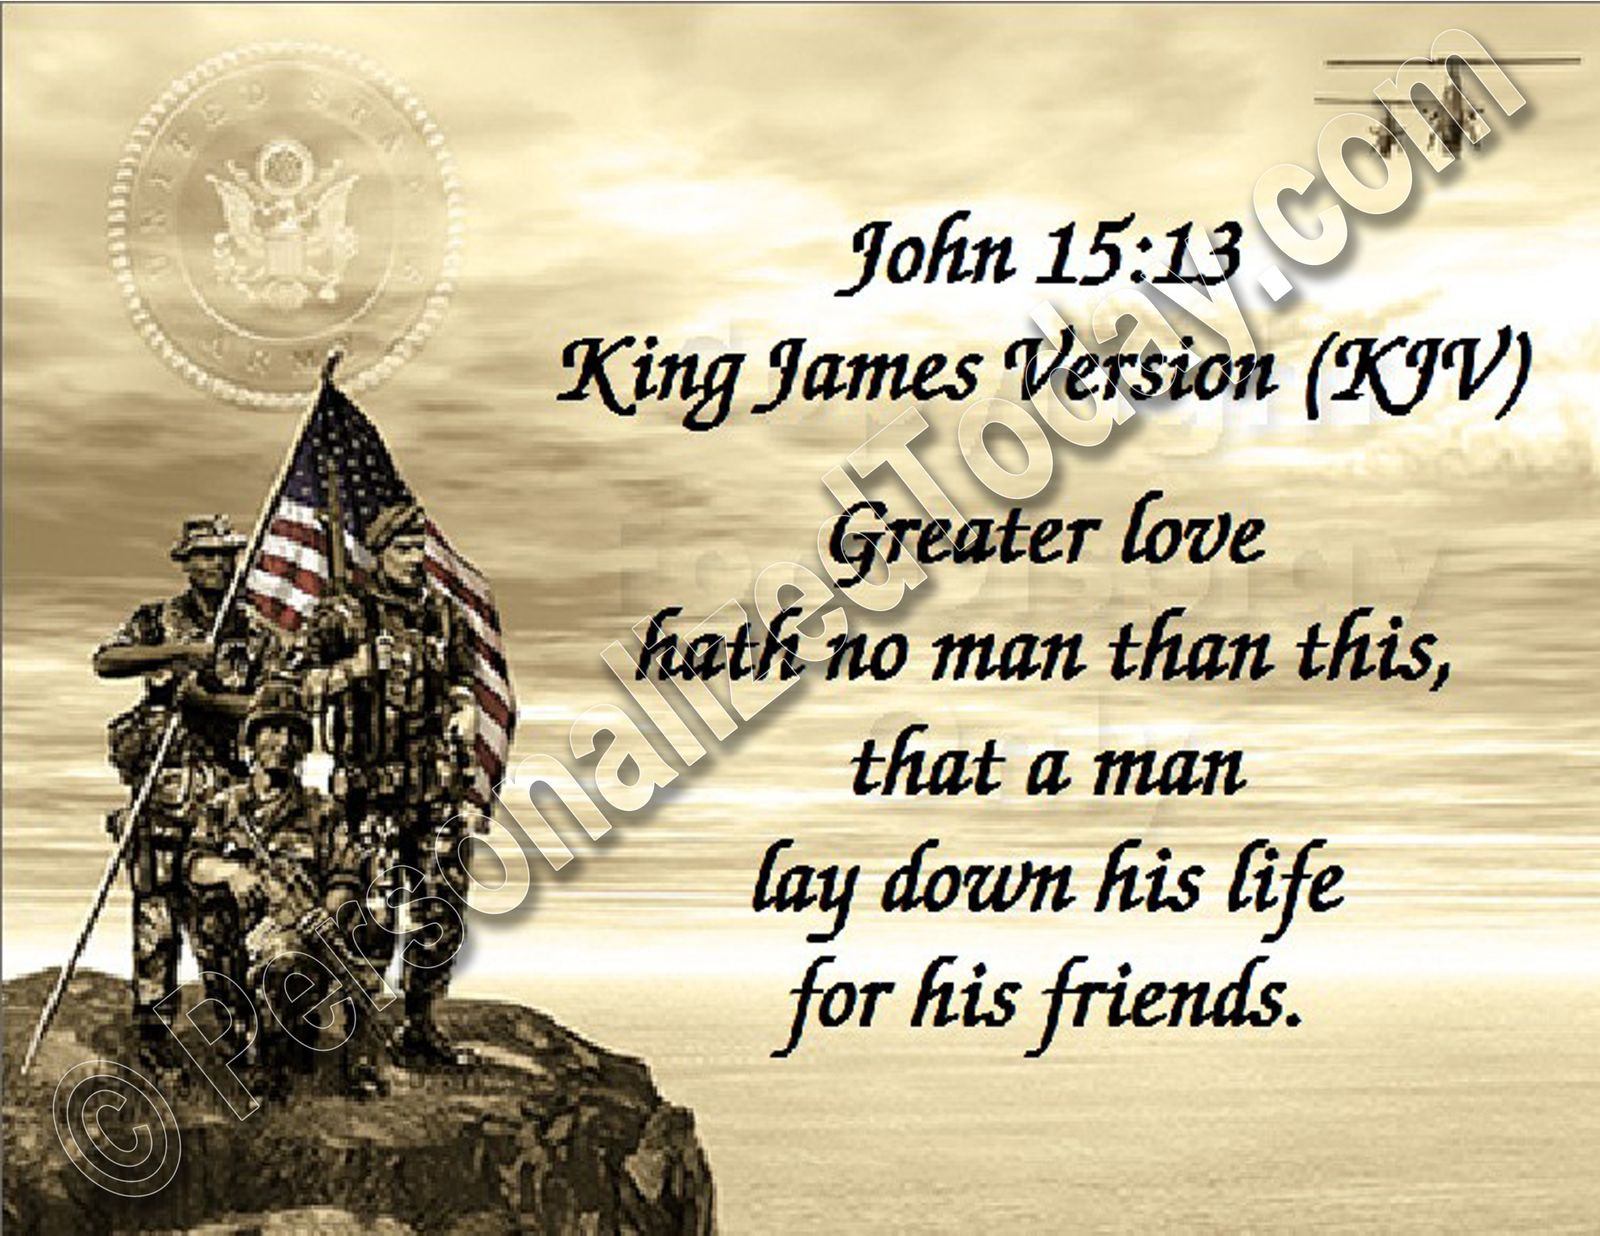 John 15 13 King James Version K J V Greater Love Hath No Man Than This That He Should Lay Down His Life For His Friends Army Military Service Men